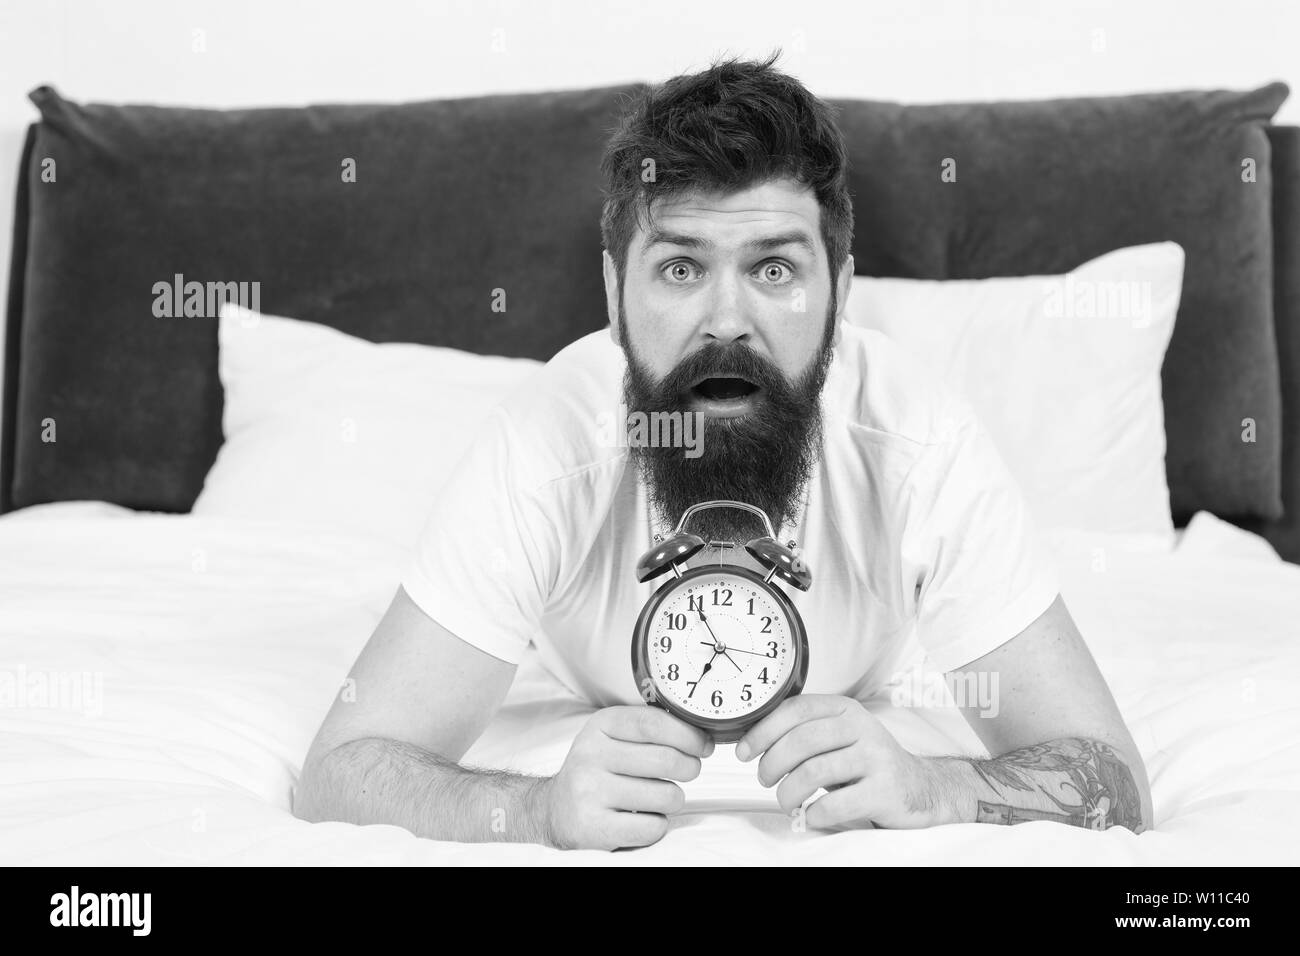 Tips for becoming an early riser. Problem with early morning awakening. Get up with alarm clock. Overslept again. Tips for waking up early. Man bearded hipster sleepy face in bed with alarm clock. - Stock Image